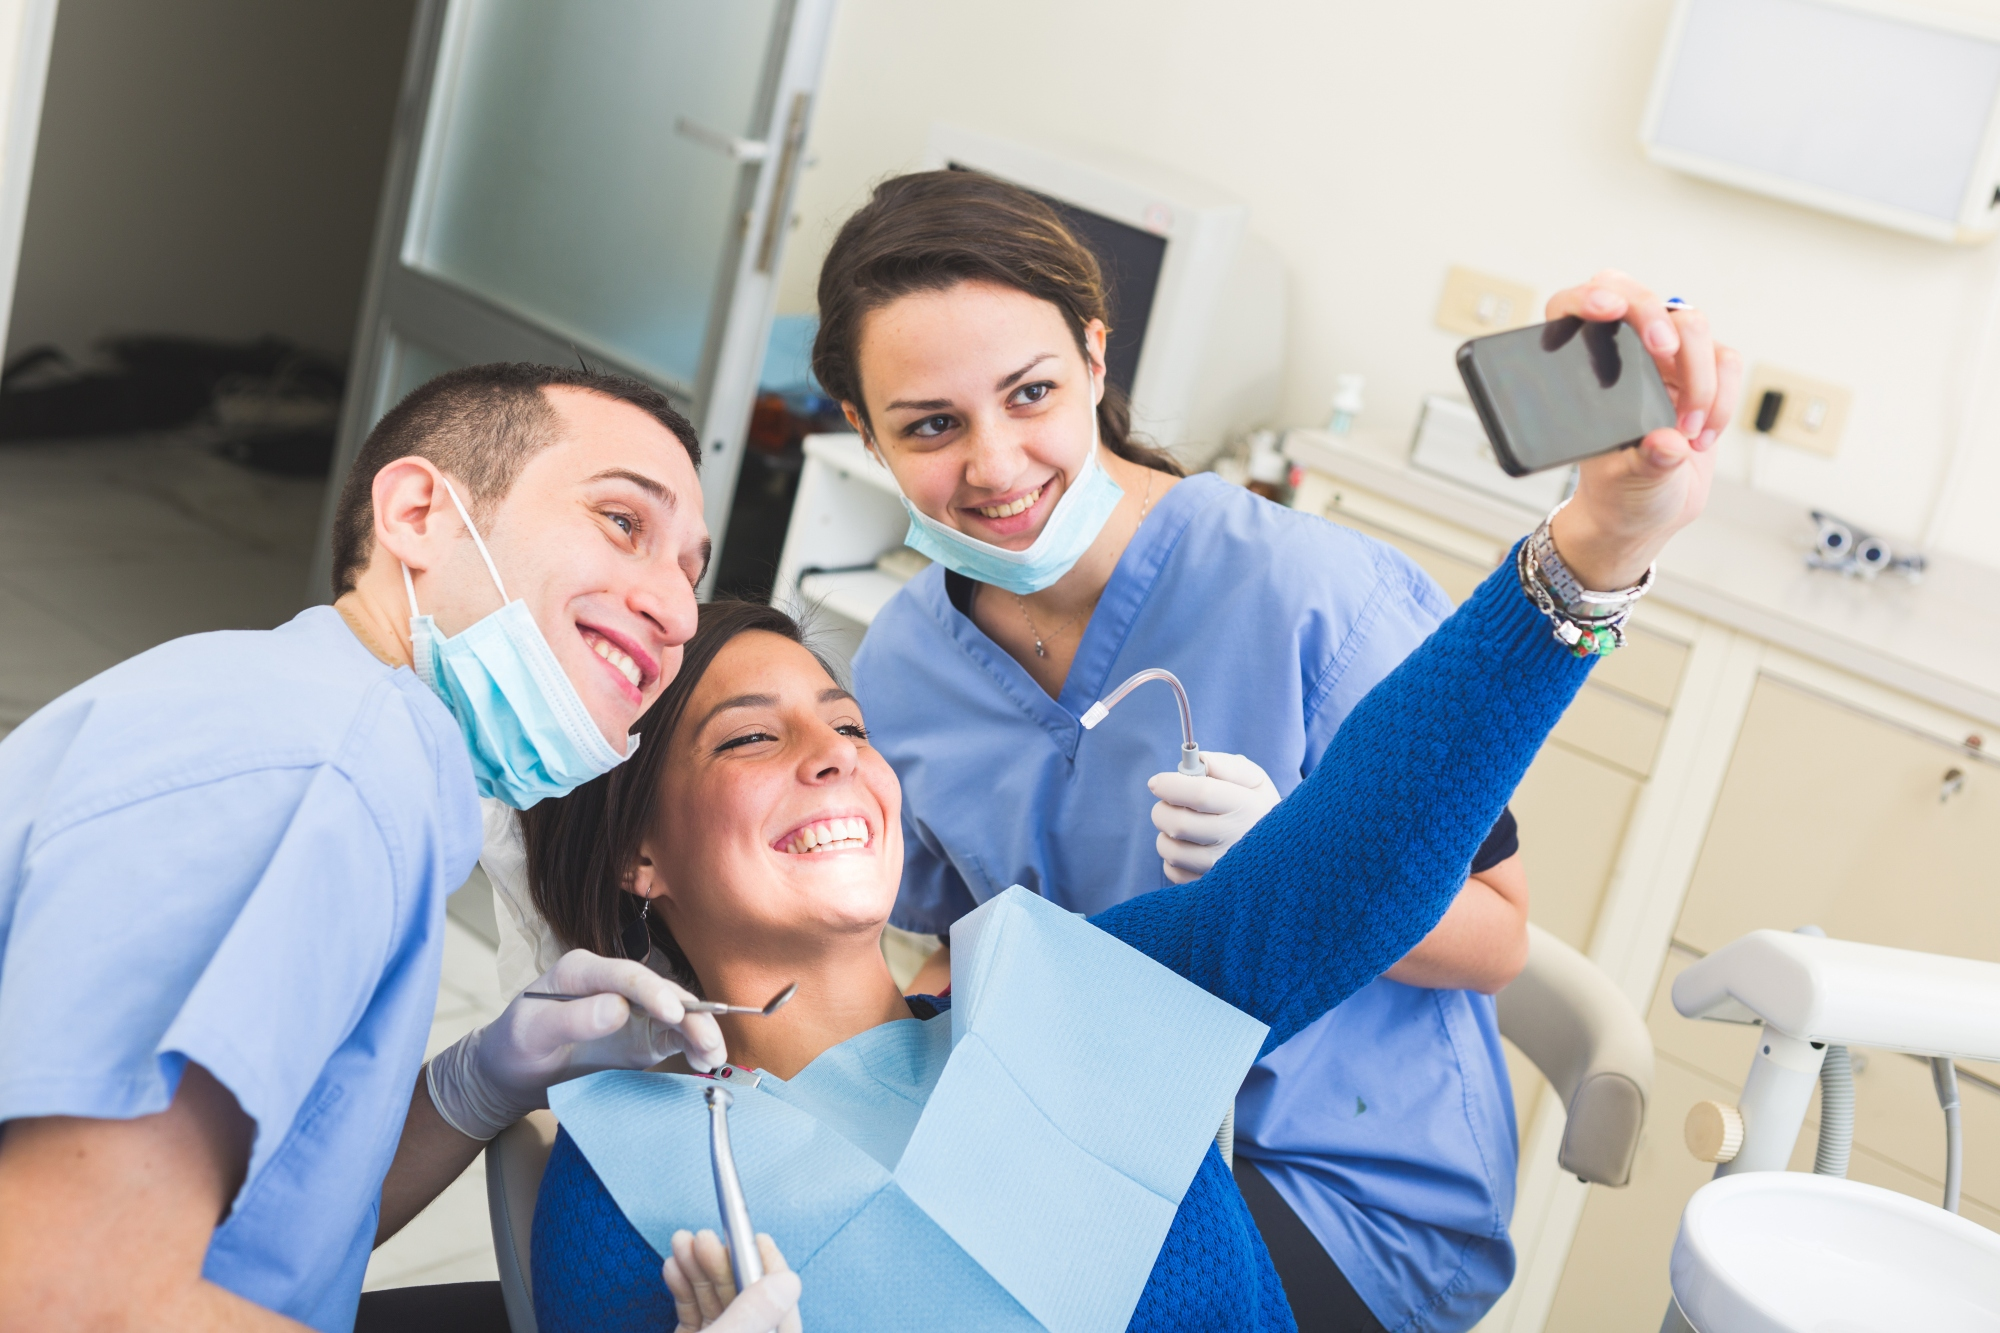 Types of Emails to make dental patients happy